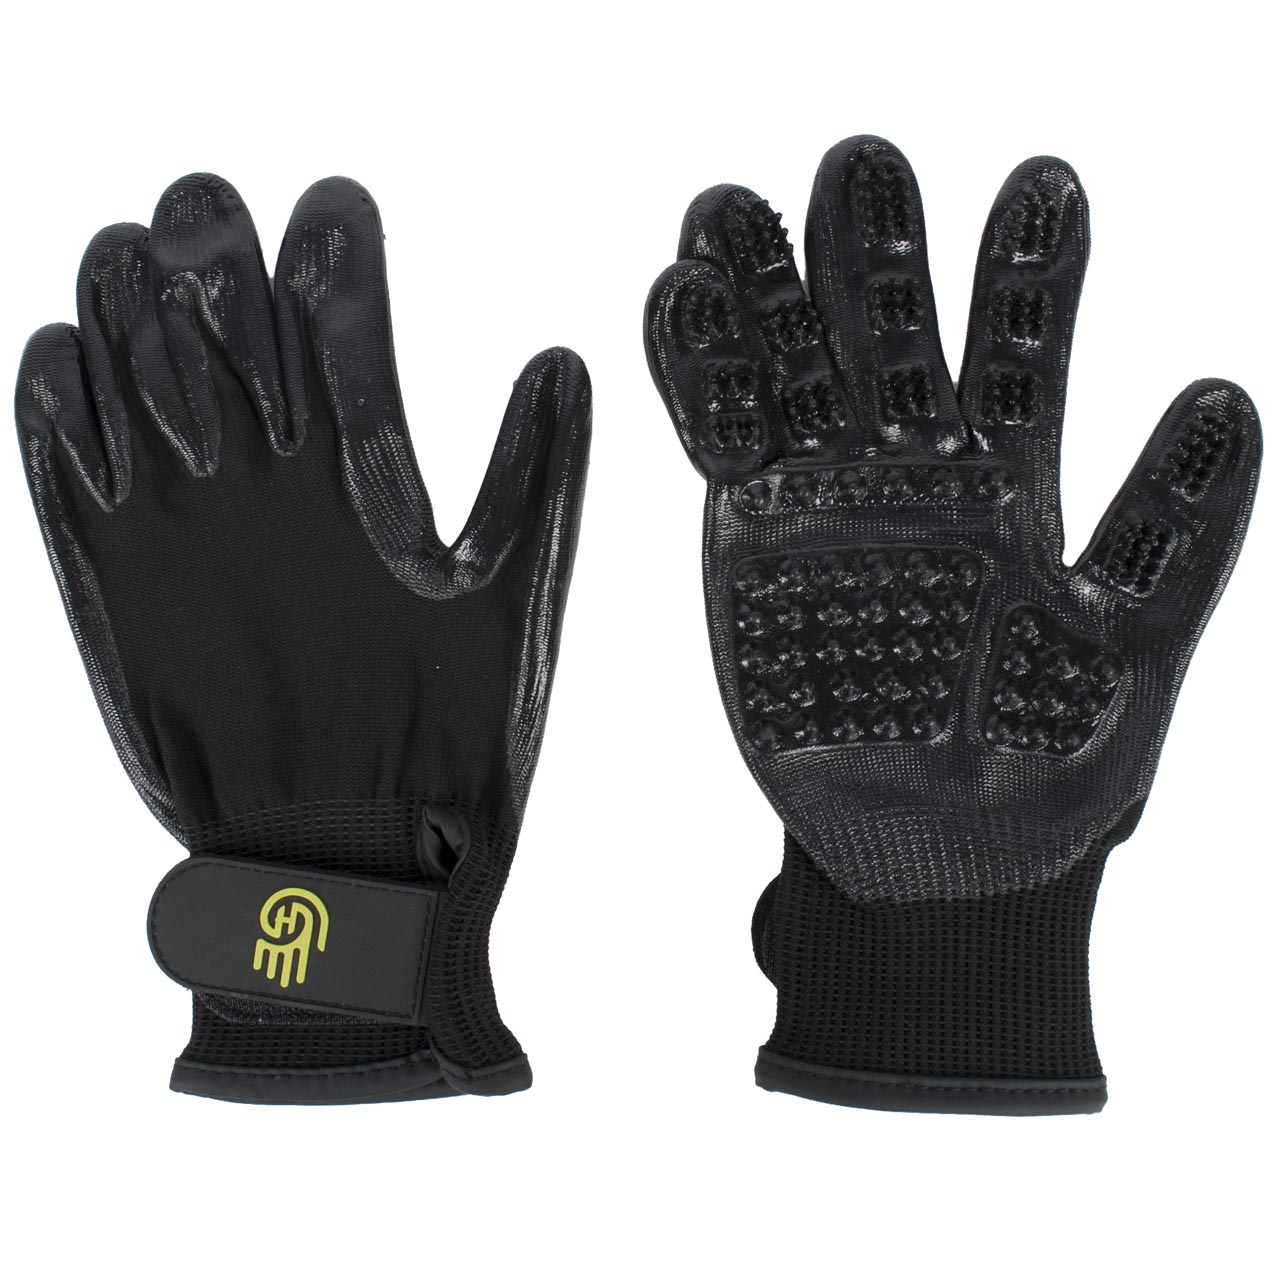 LeMieux Grooming Glove Hands on